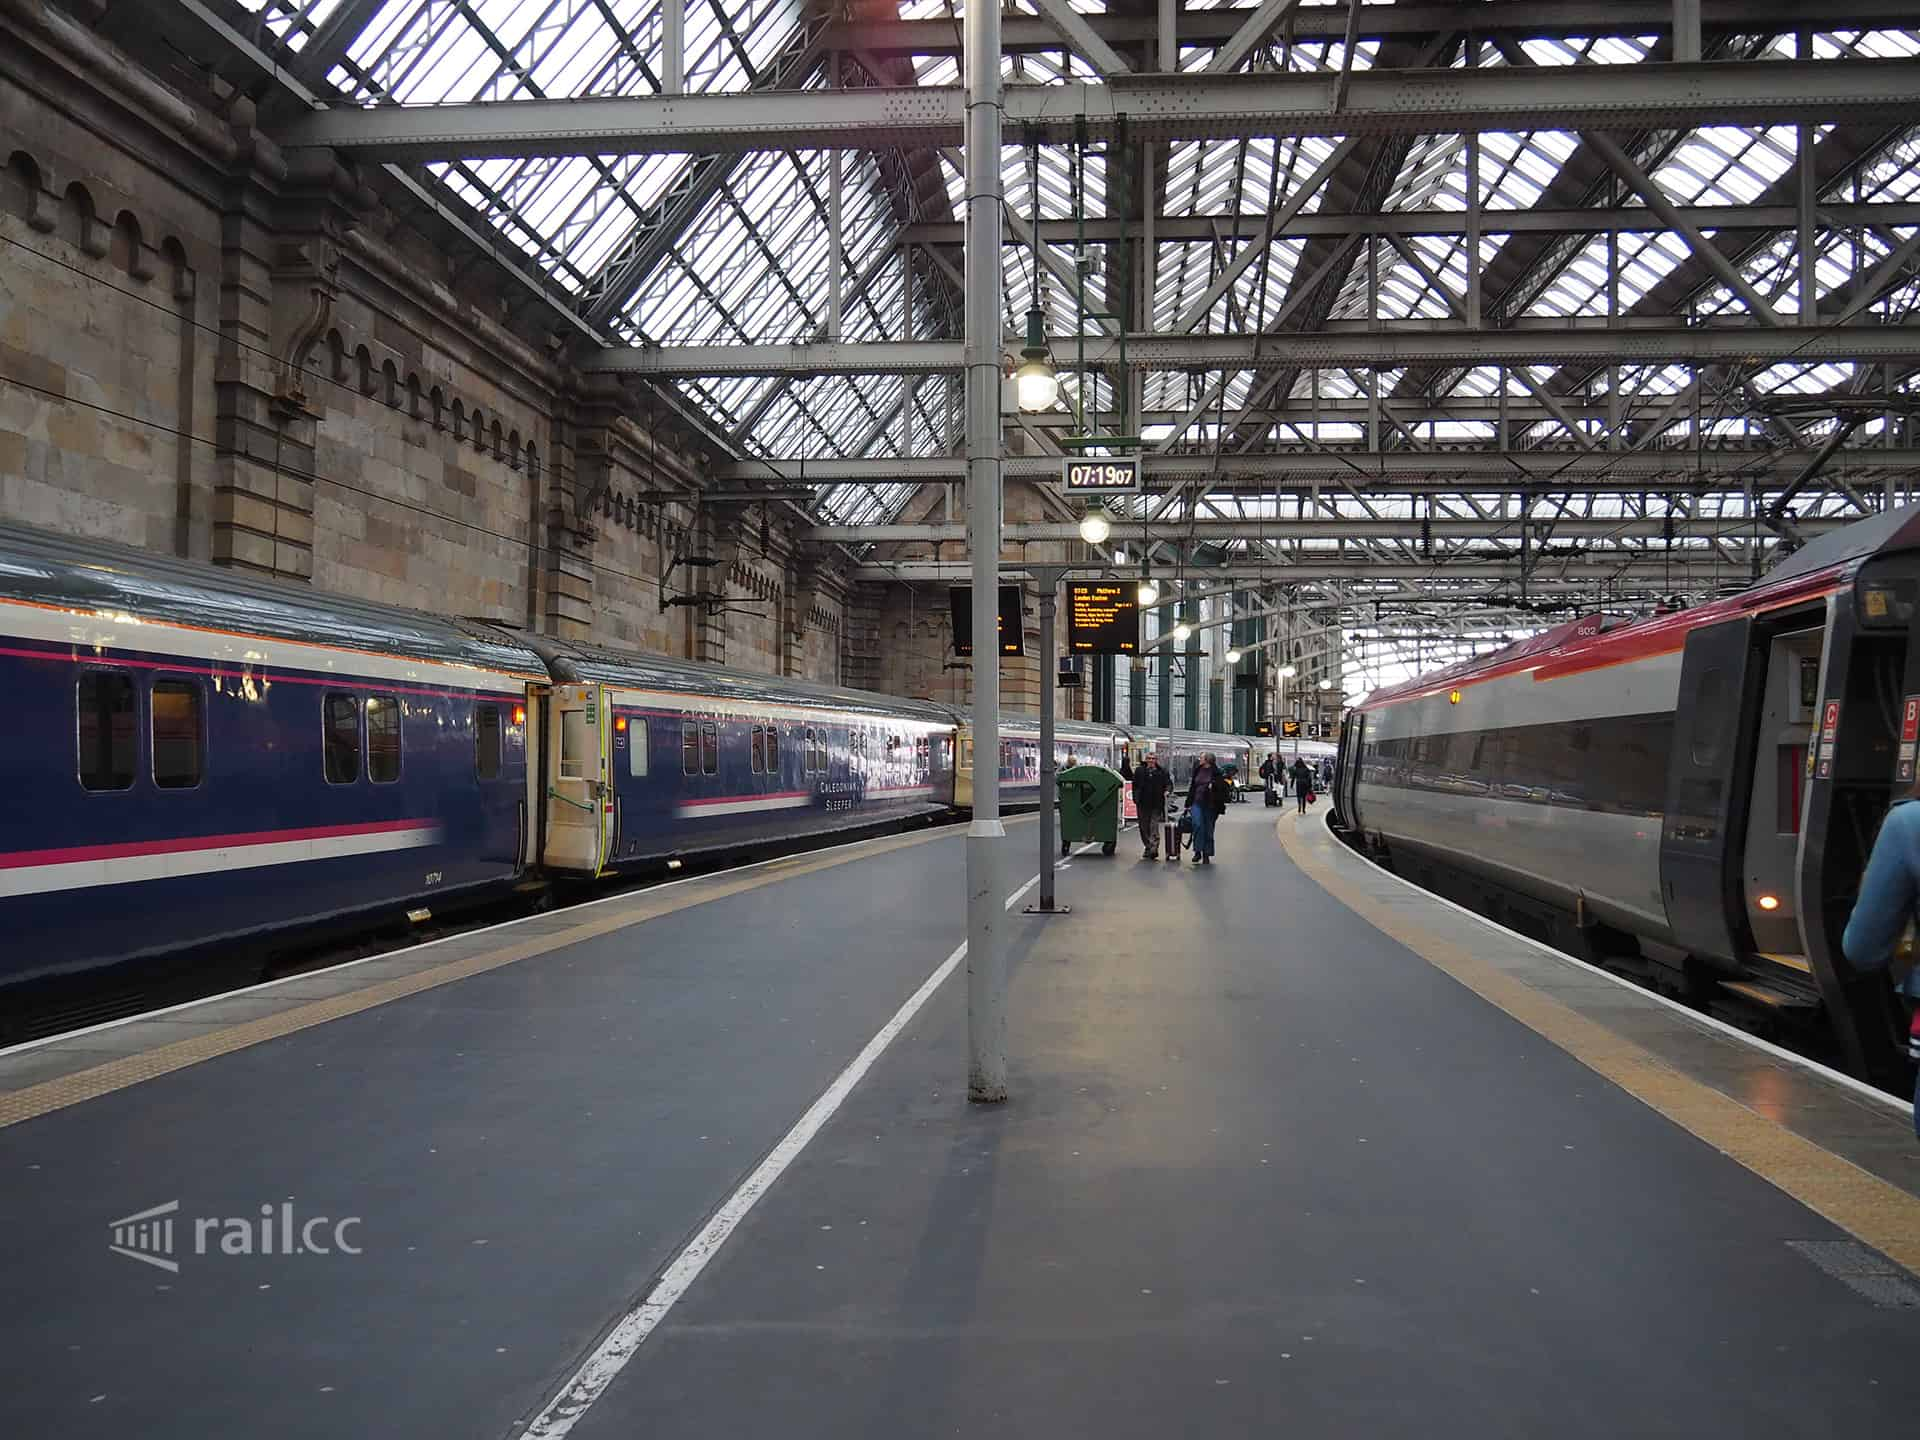 Glasgow railway station